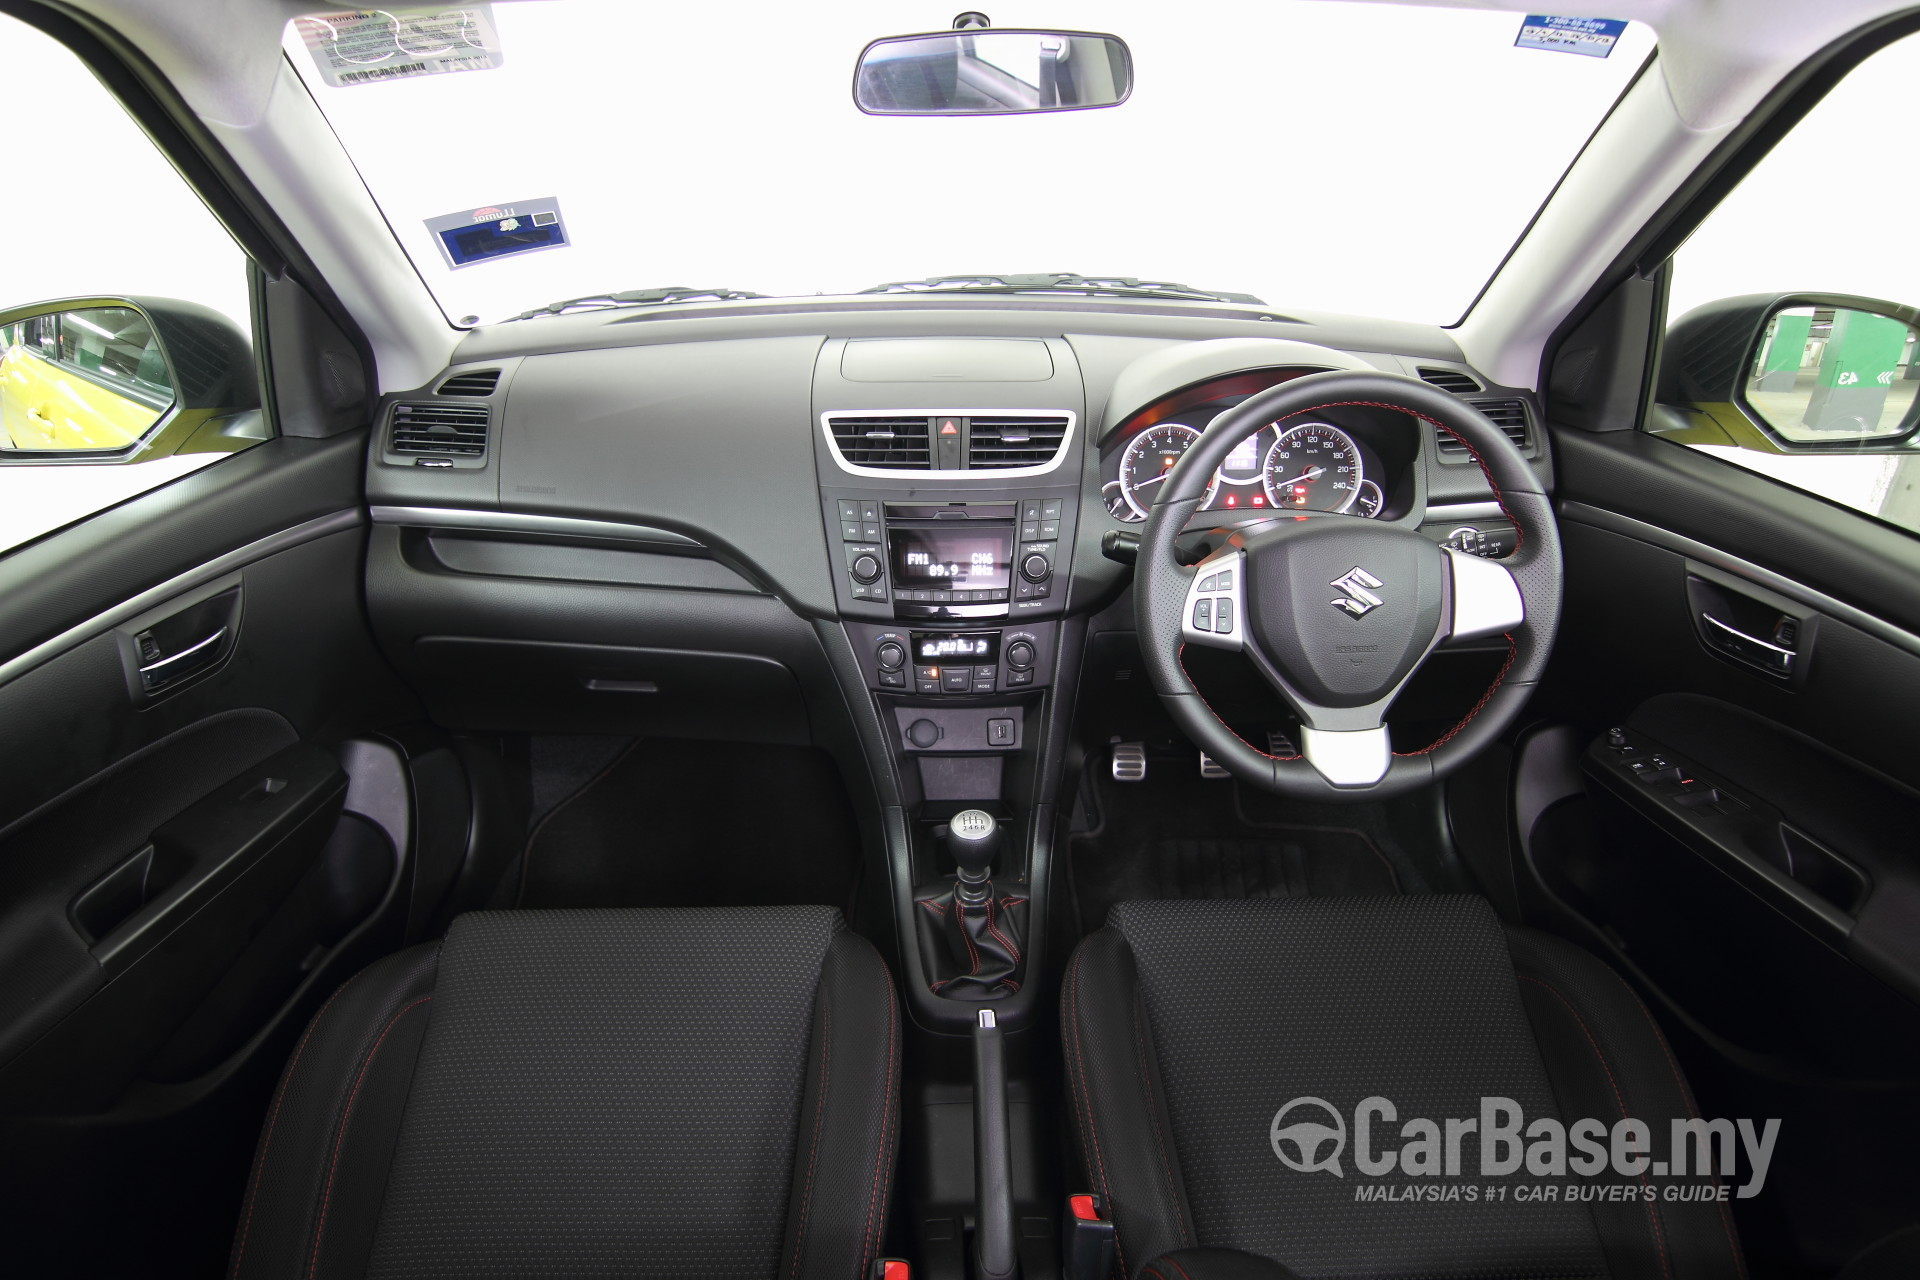 https://s1.carbase.my/upload/61/306/267/interior/s13-1399883254-5958-suzuki-swift-sport.jpg